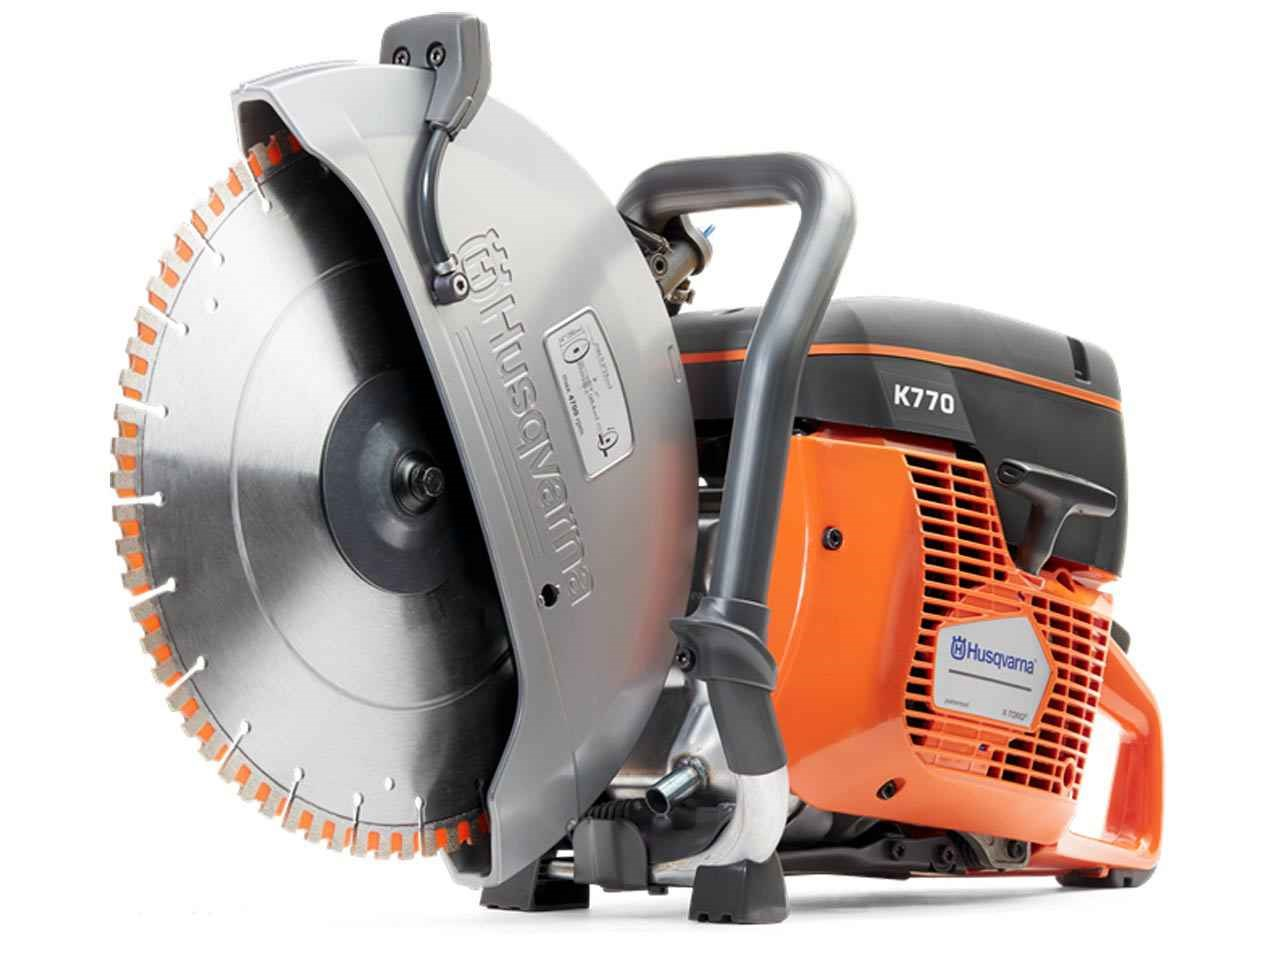 Husqvarna k770 300 300mm12in disc cutter and diamond blade greentooth Image collections